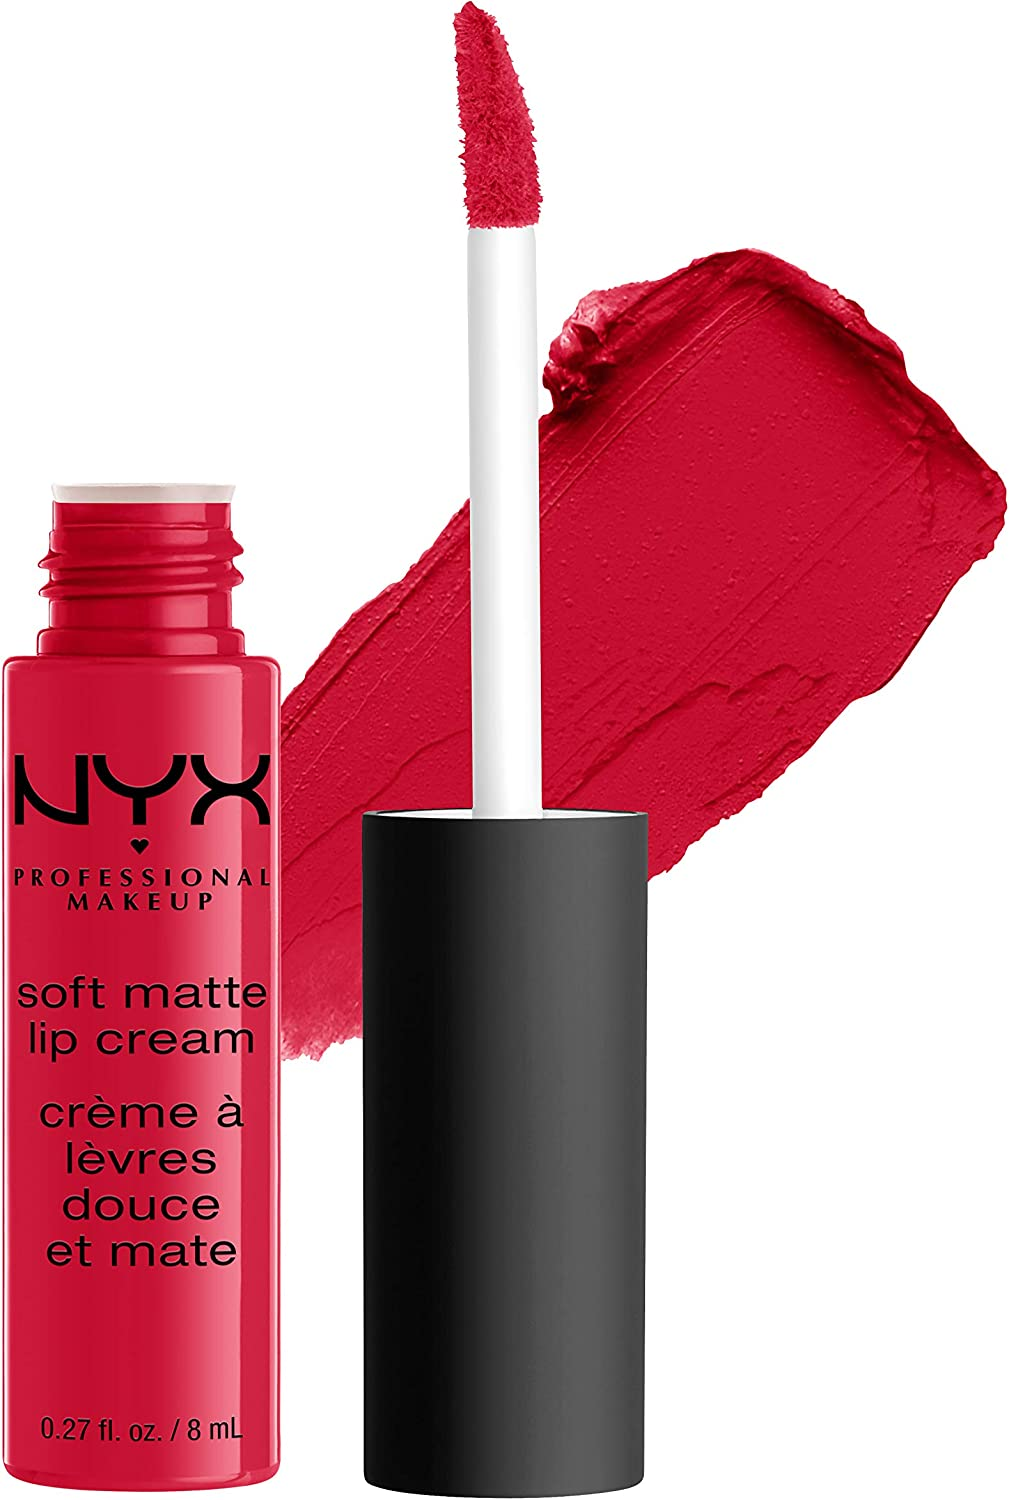 NYX Professional Makeup Pintalabios Soft Matte Lip Cream, Acabado cremoso mate, Color ultrapigmentado